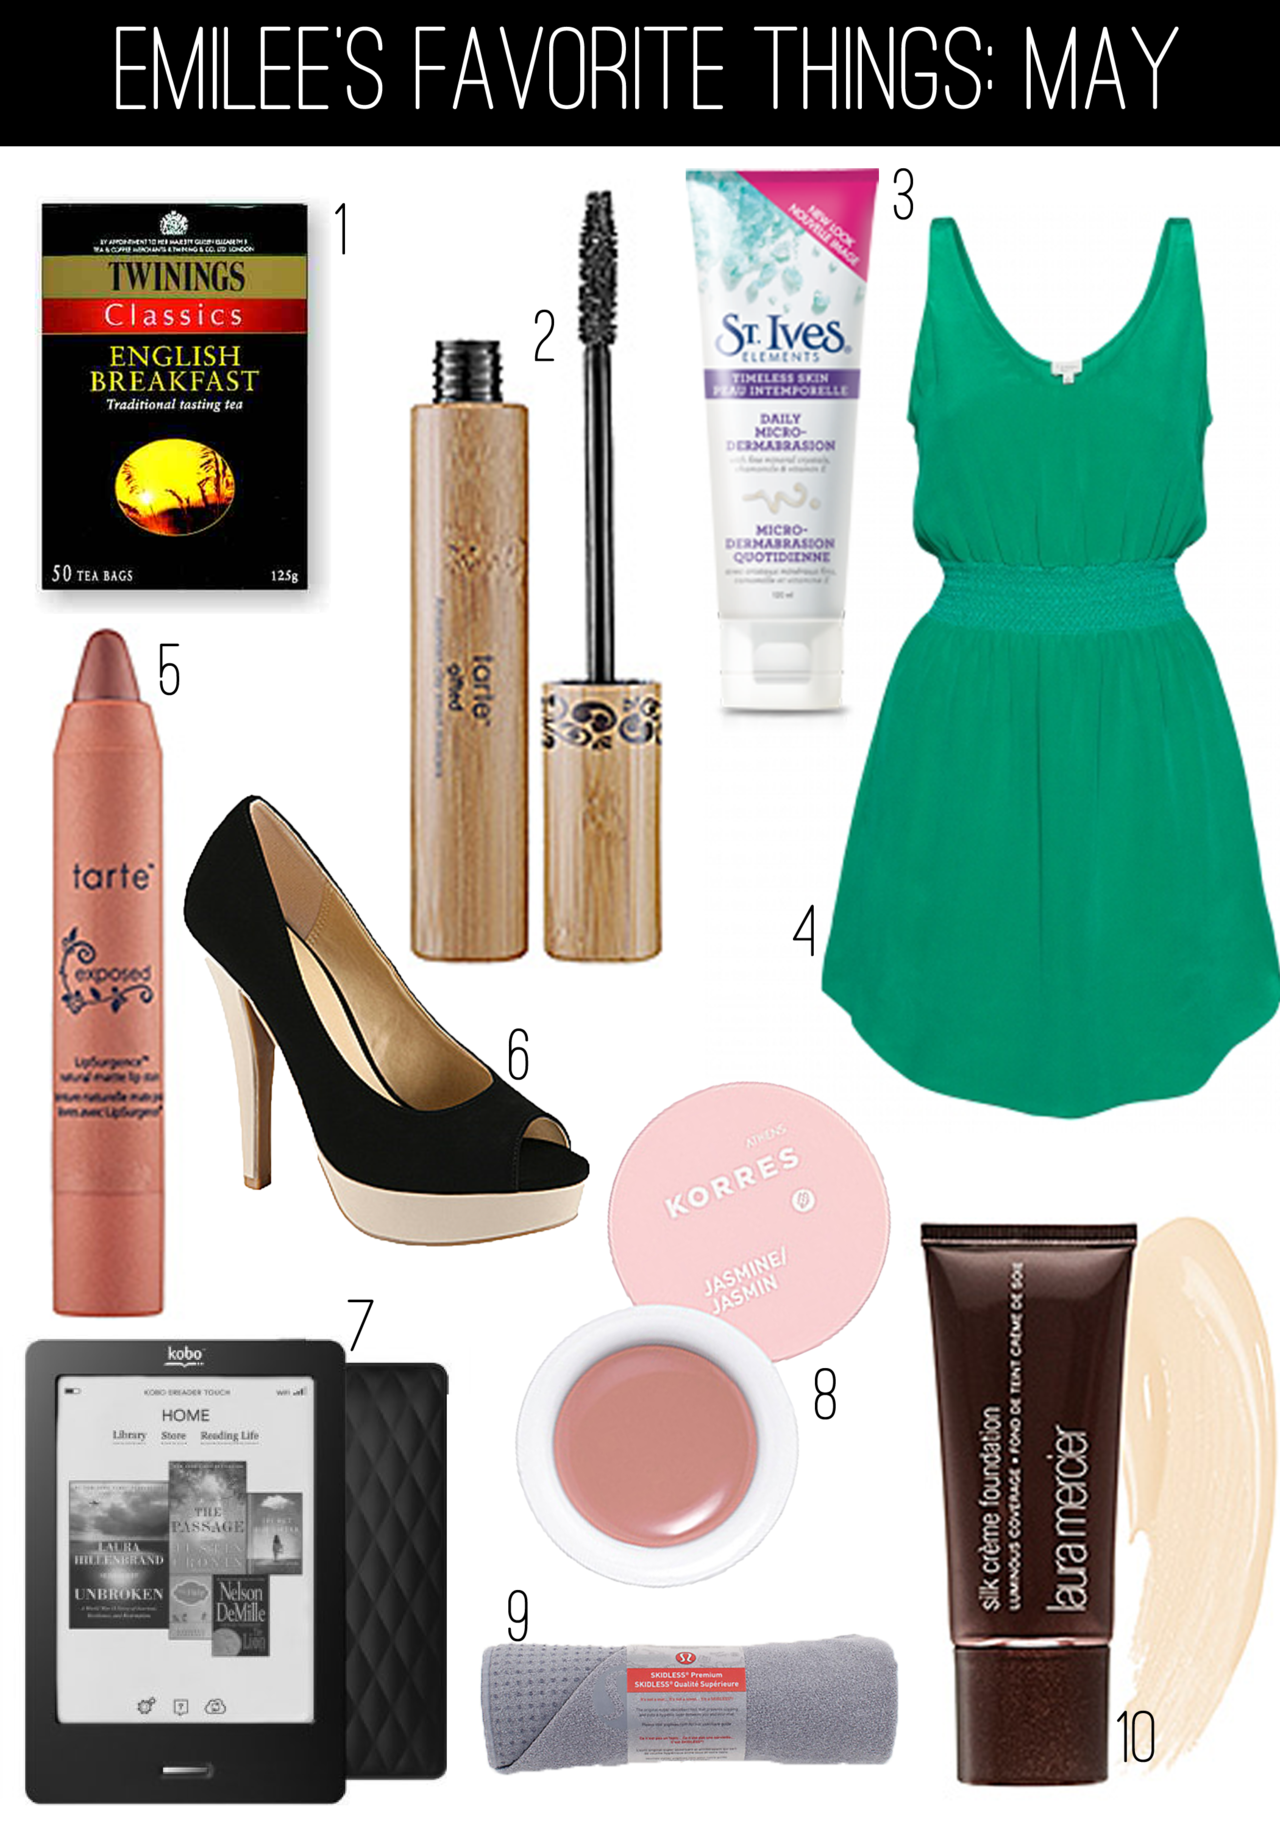 1.Twining English Breakfast Tea 2.Tarte Gifted Amazonian Clay Smart Mascara ($19.00) 3.St. Ives Timeless Skin Daily Microdermabrasion ($7.99) 4.Aritzia Blythe Dress in Emerald ($135.00) 5.Tarte LipSurgence Natural Matte Lip Stain in Exposed ($24.00) 6. Aldo Shost Platform Pumps ($40.00 sale) 7.Kobo Touch ($90.00) 8.Korres Lip Butter in Jasmine ($16.00) 9.Lululemon Skidless Towel ($65.00) 10.Laura Mercier Silk Creme Foundation ($42.00)